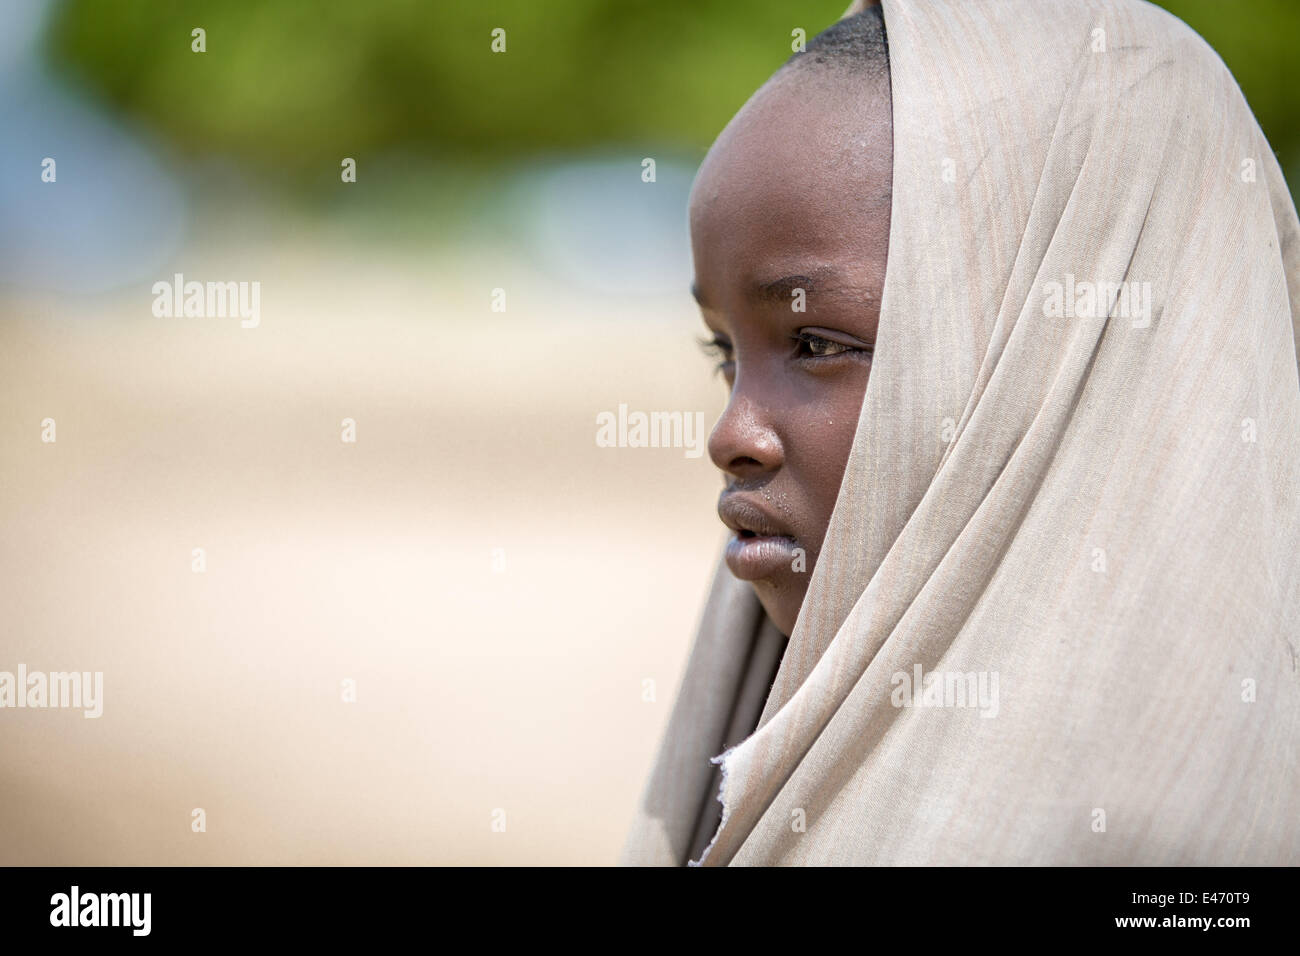 The Erbore tribe is a small tribe that lives in the southwest region of the Omo Valley on 17 May 2014 - Stock Image